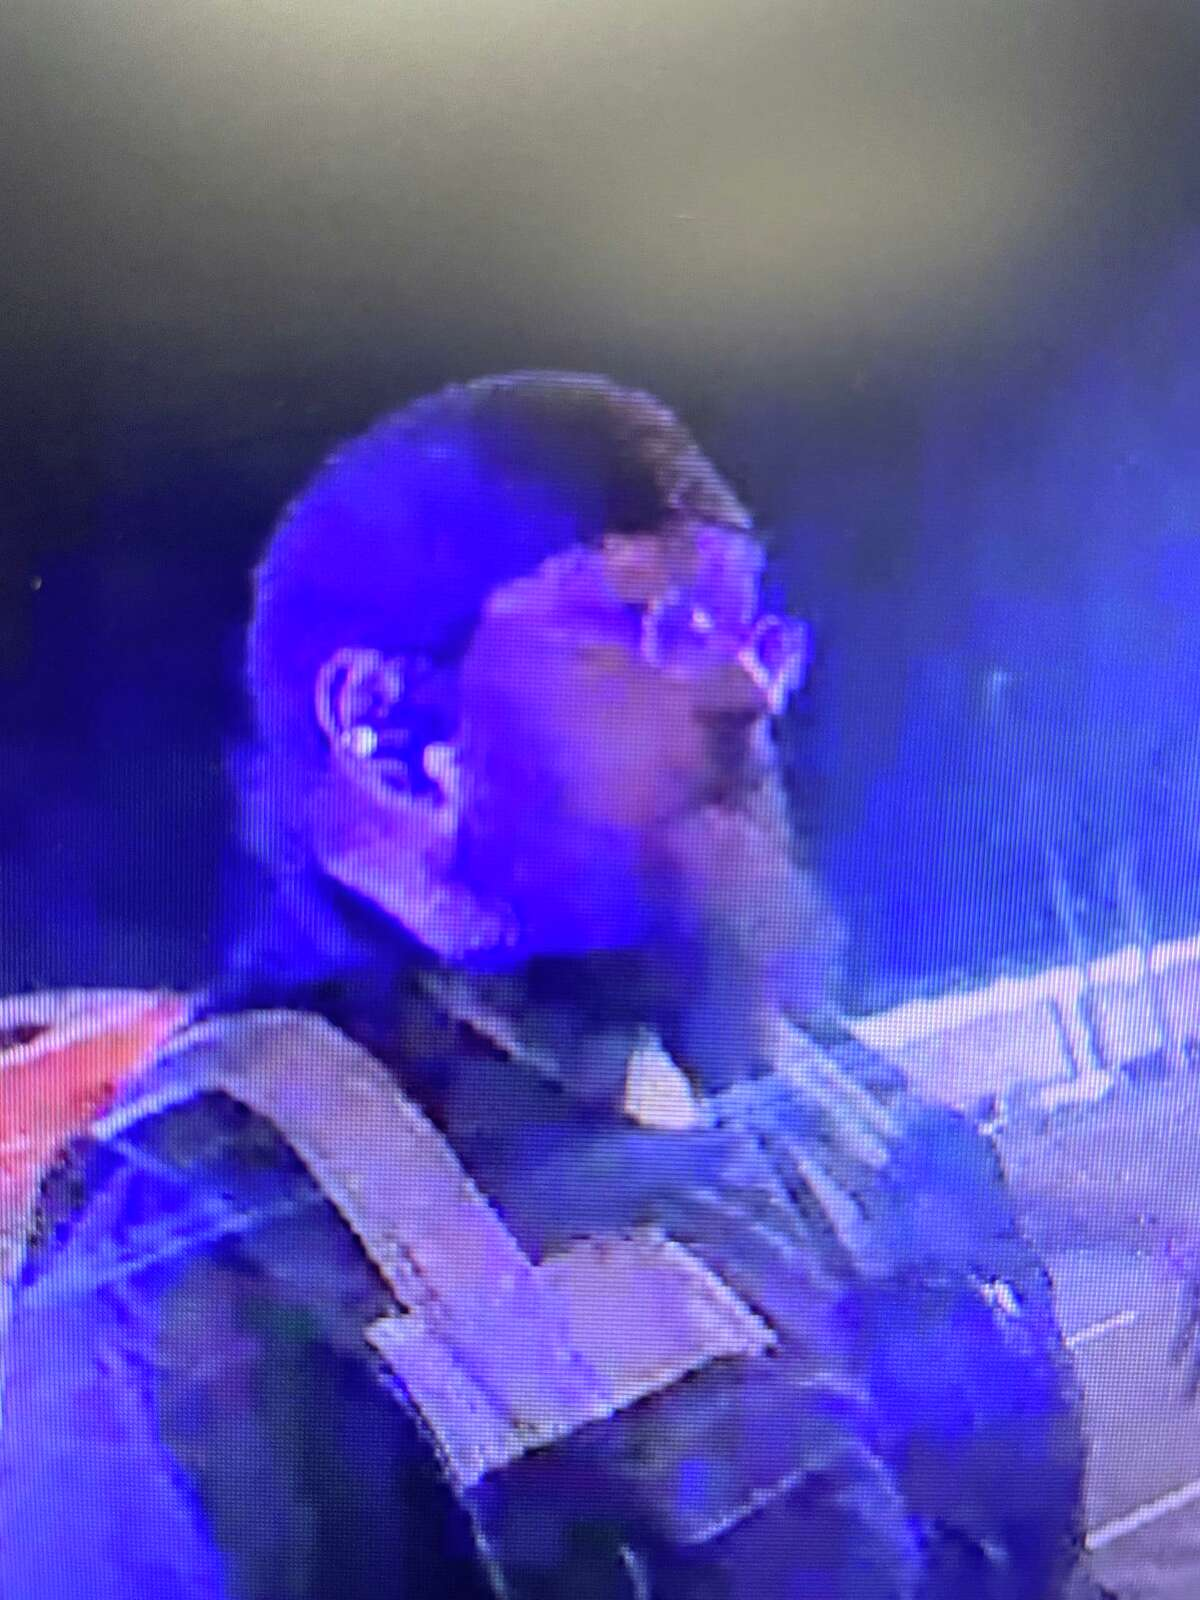 Connecticut State Police are asking for the public to help identify this man. The unidentified tow operator helped free a man from a burning car in Stamford, Conn. on Sept. 4, 2021.